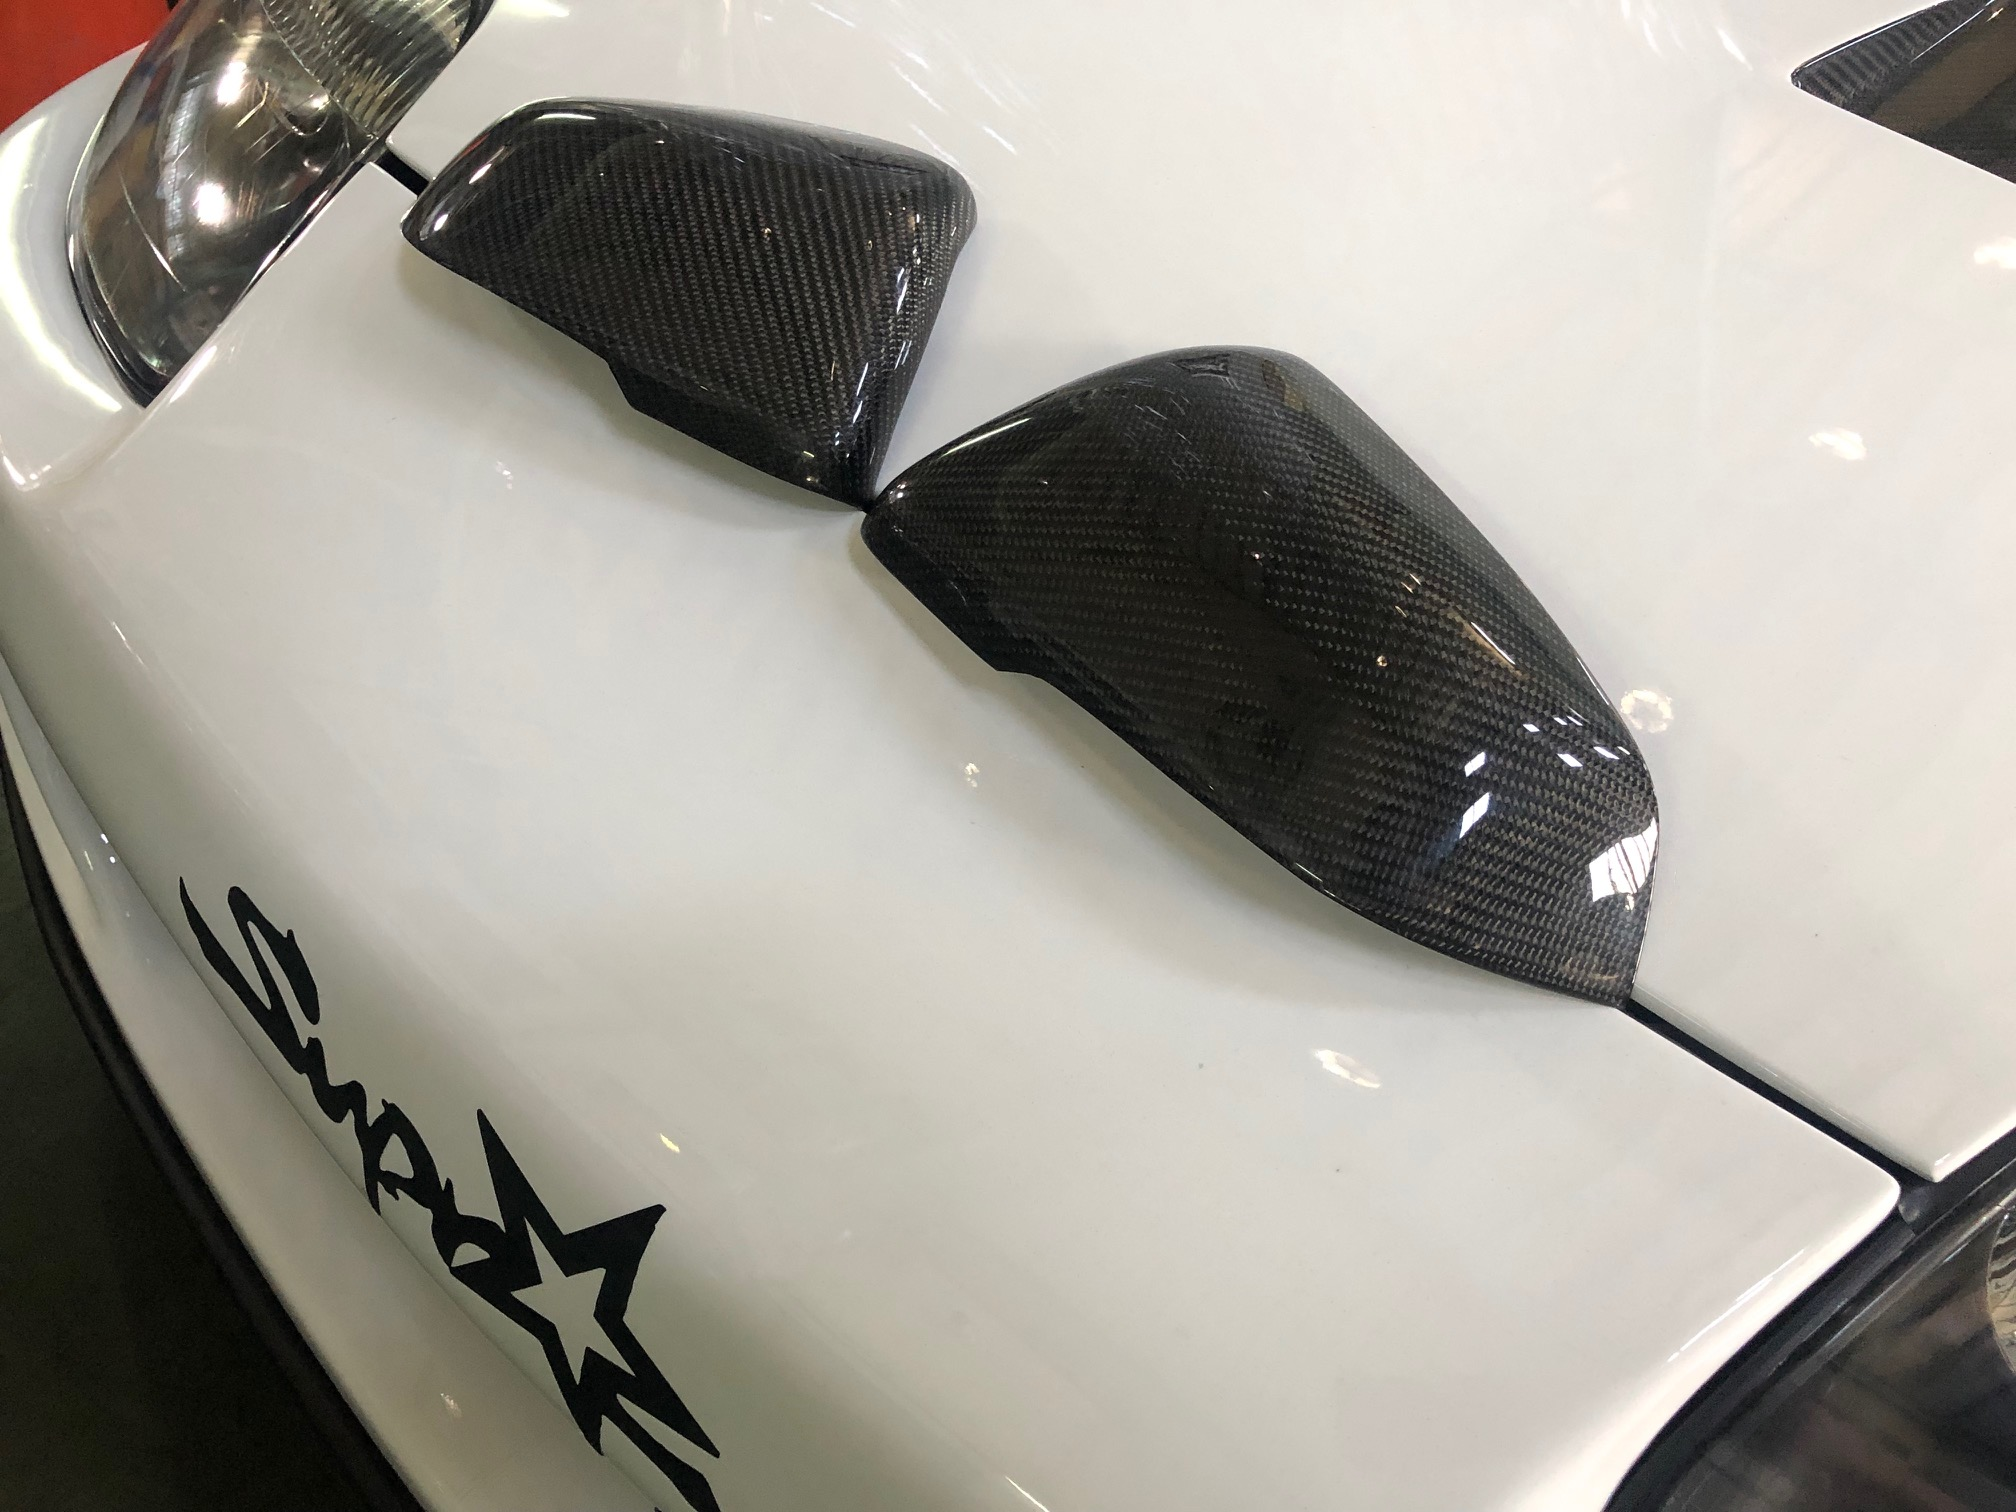 2020 Toyota Supra Carbon Fiber Mirror covers A90 MK5